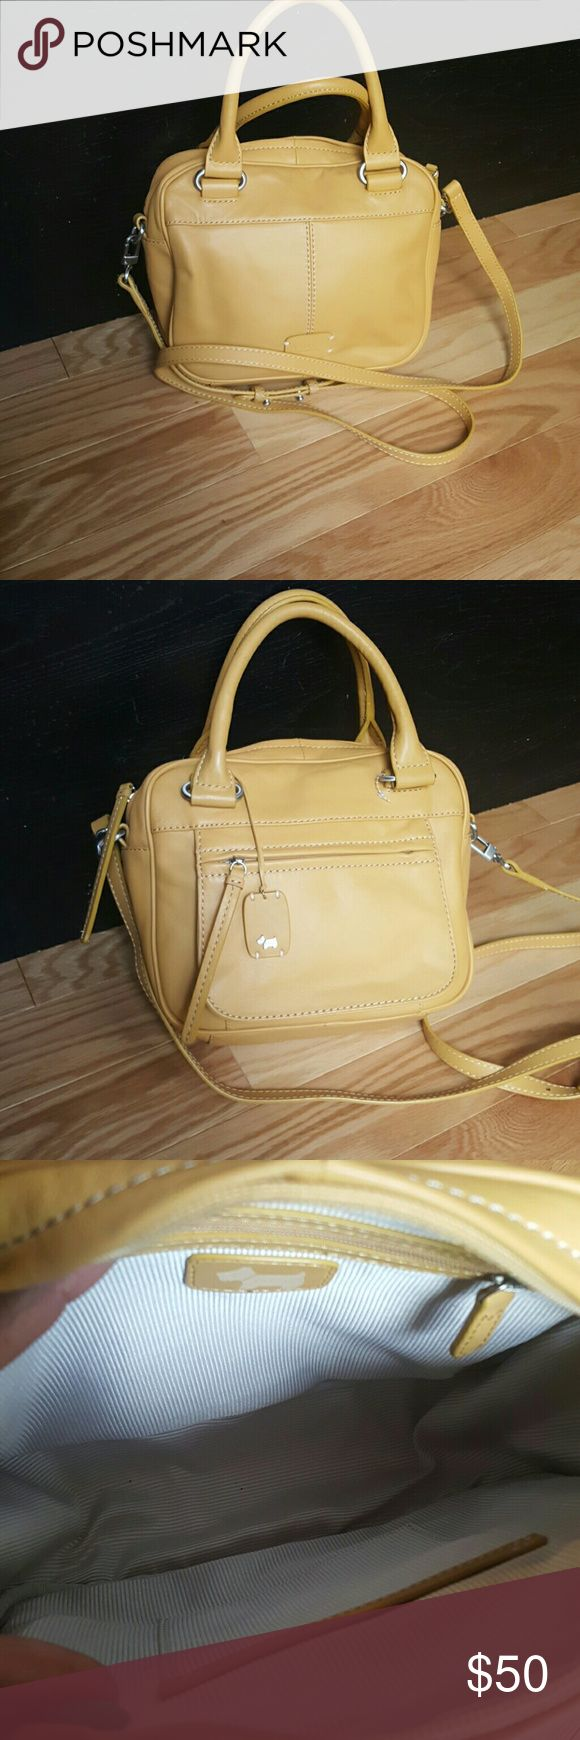 💎SALE- Leather Radley Purse Mustard yellow Radley Purse Comes with long cross body strap. In excellent condition.  No signs of wear! Radley  Bags Crossbody Bags